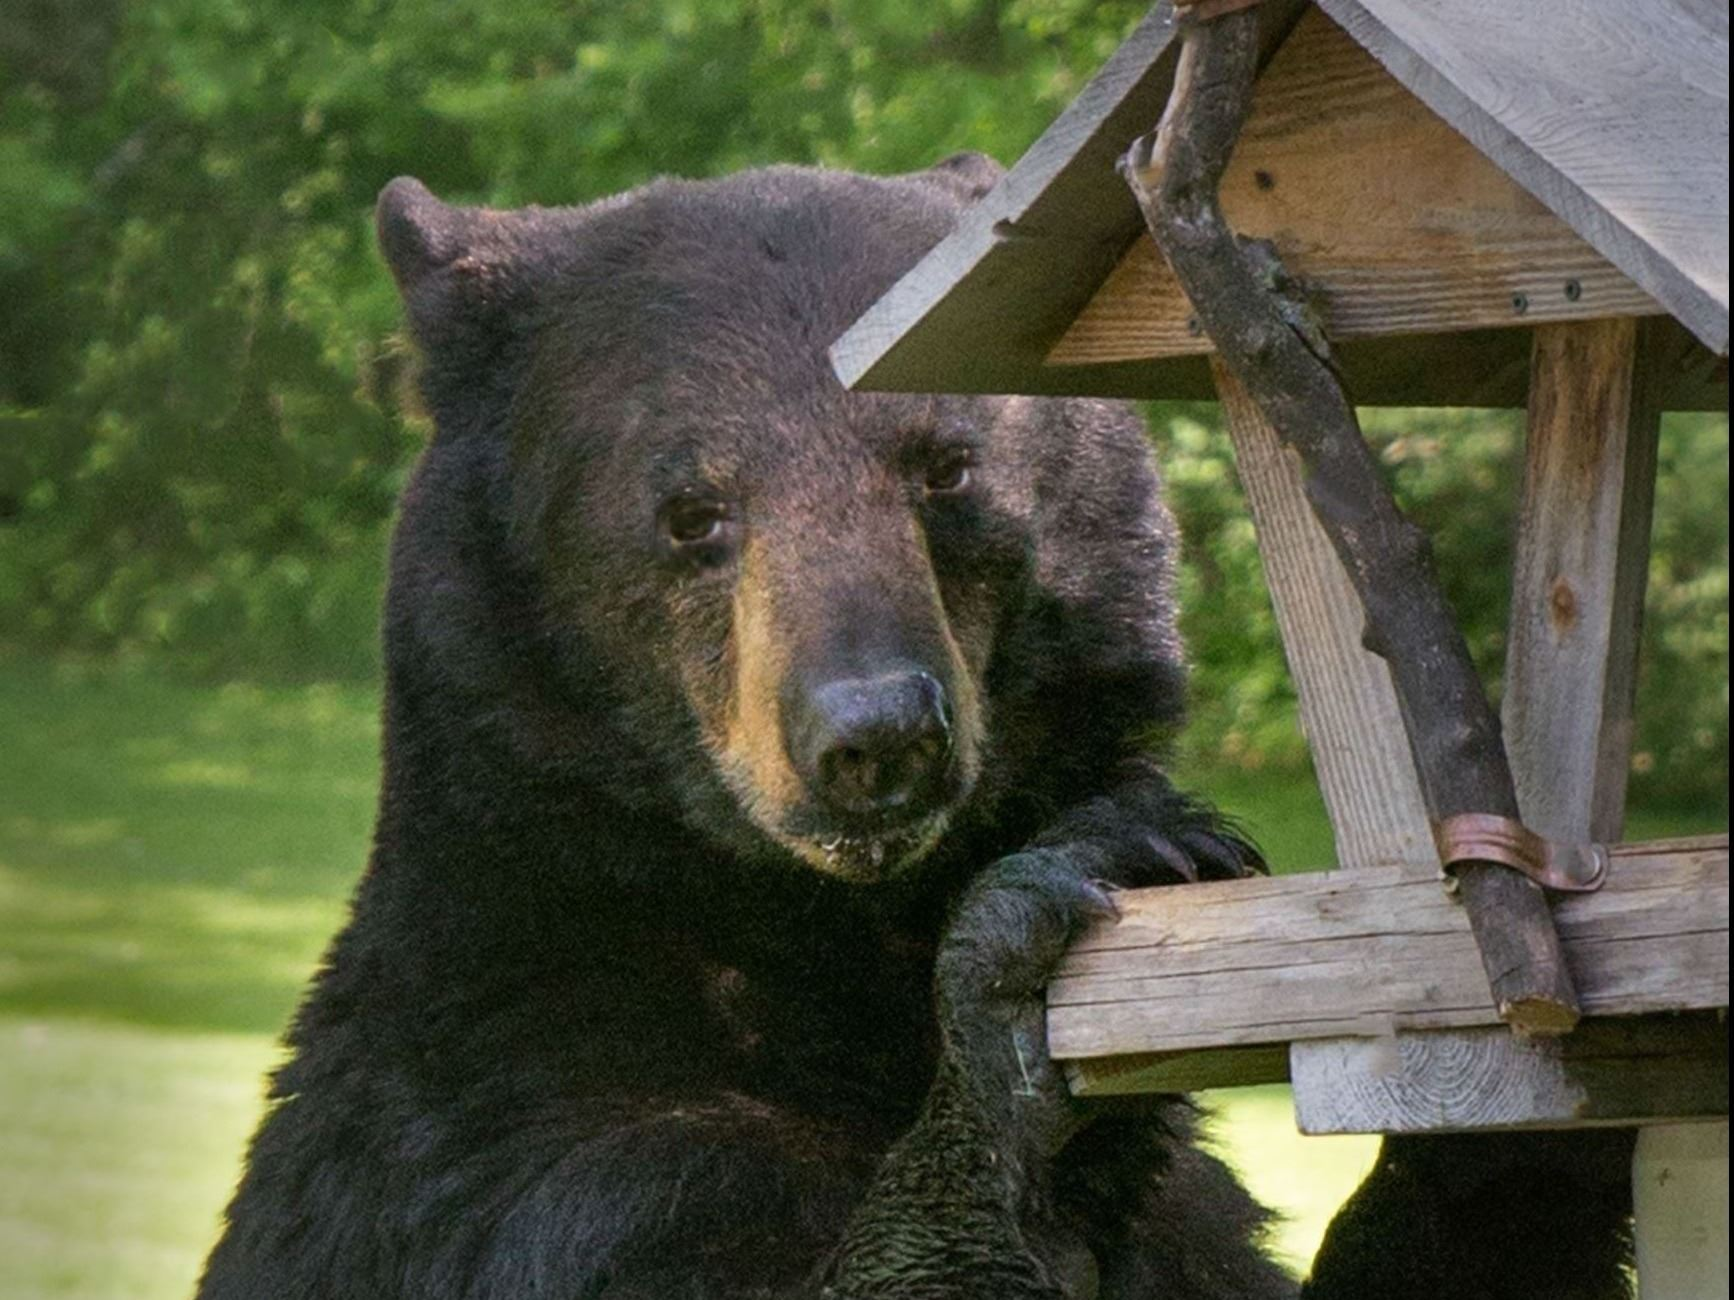 Hungry bear at bird feeder.